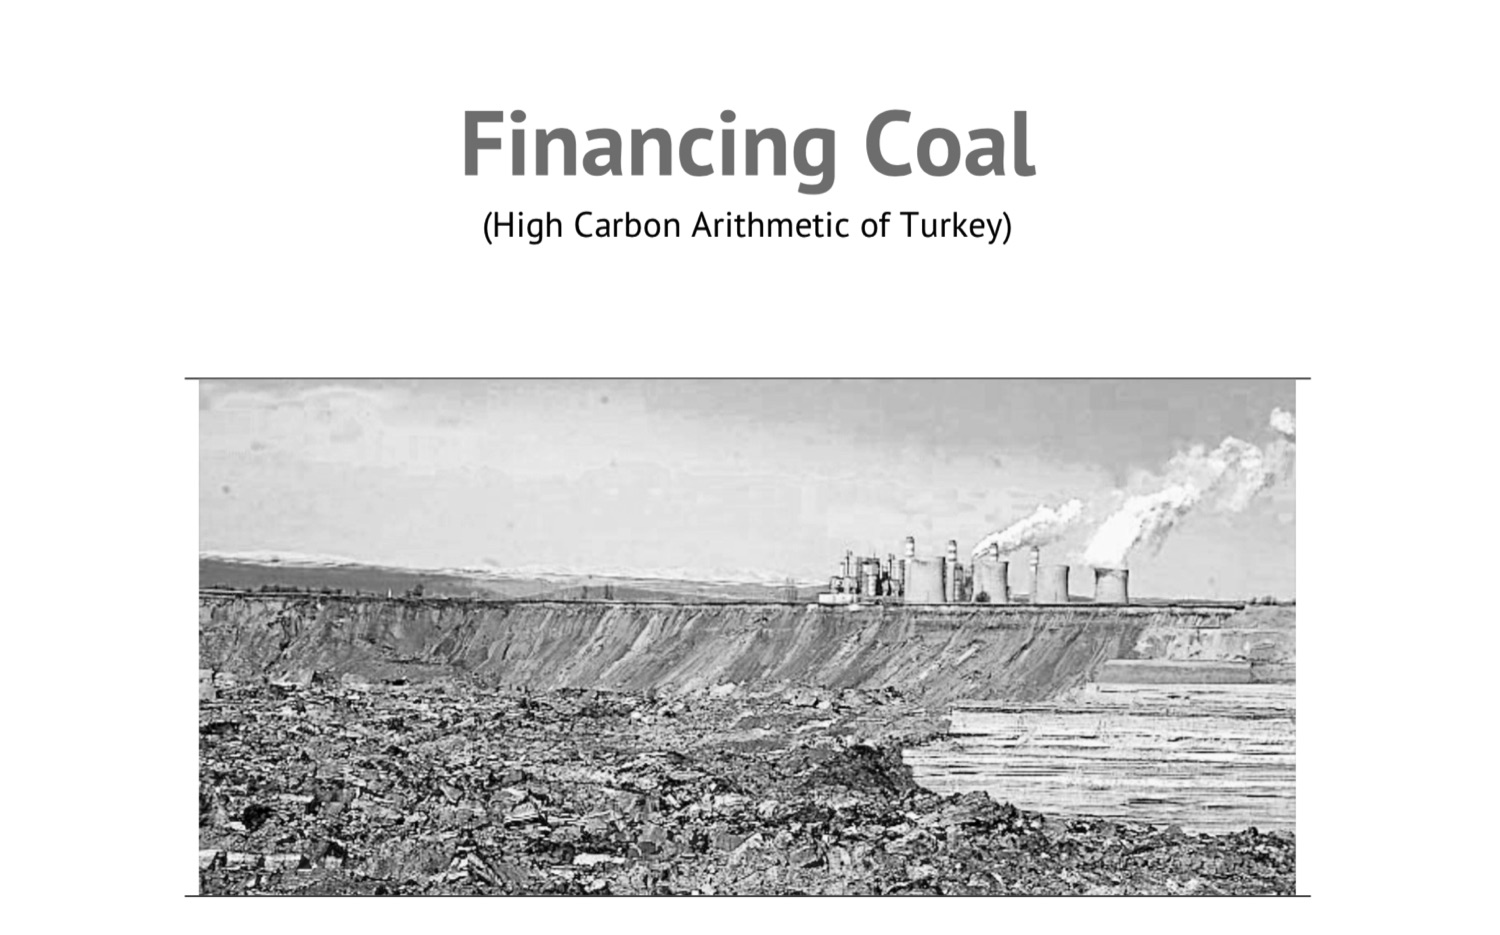 Coal & Climate Change 2015 Report: Financing Coal